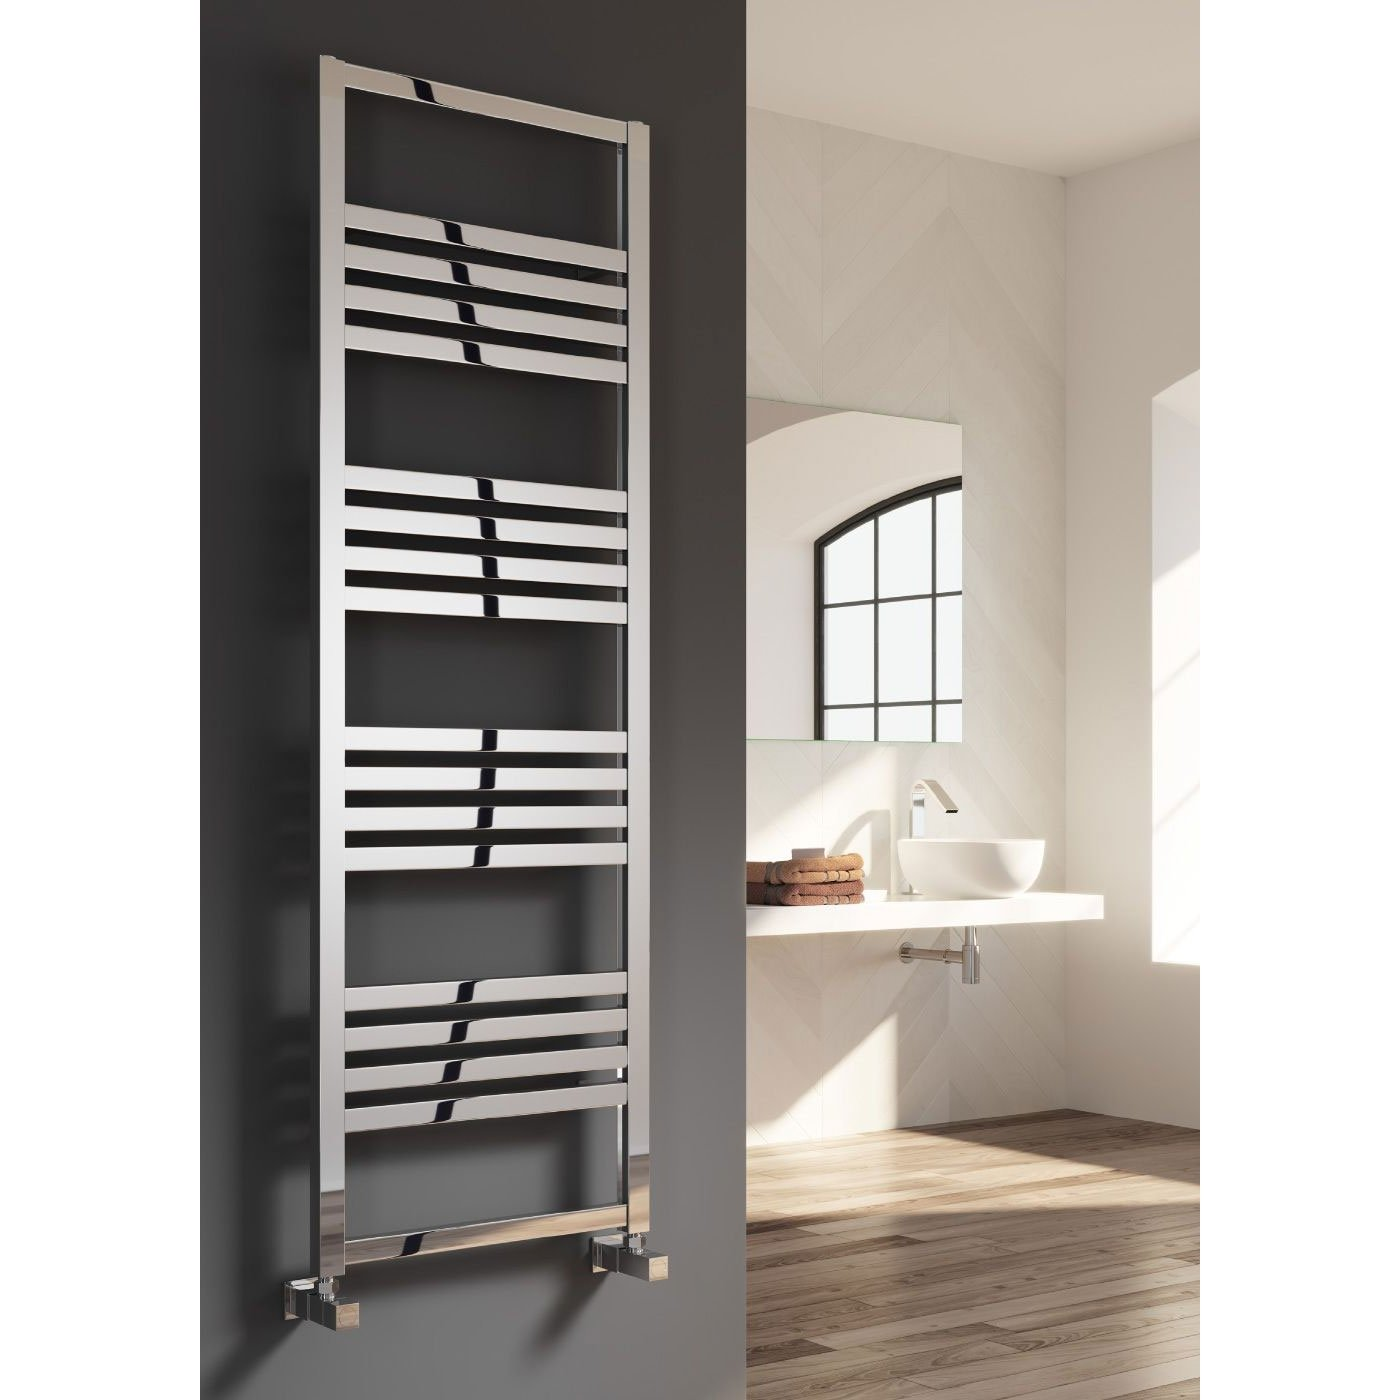 Reina Bolca Designer Heated Towel Rail 1200mm H x 485mm W Polished